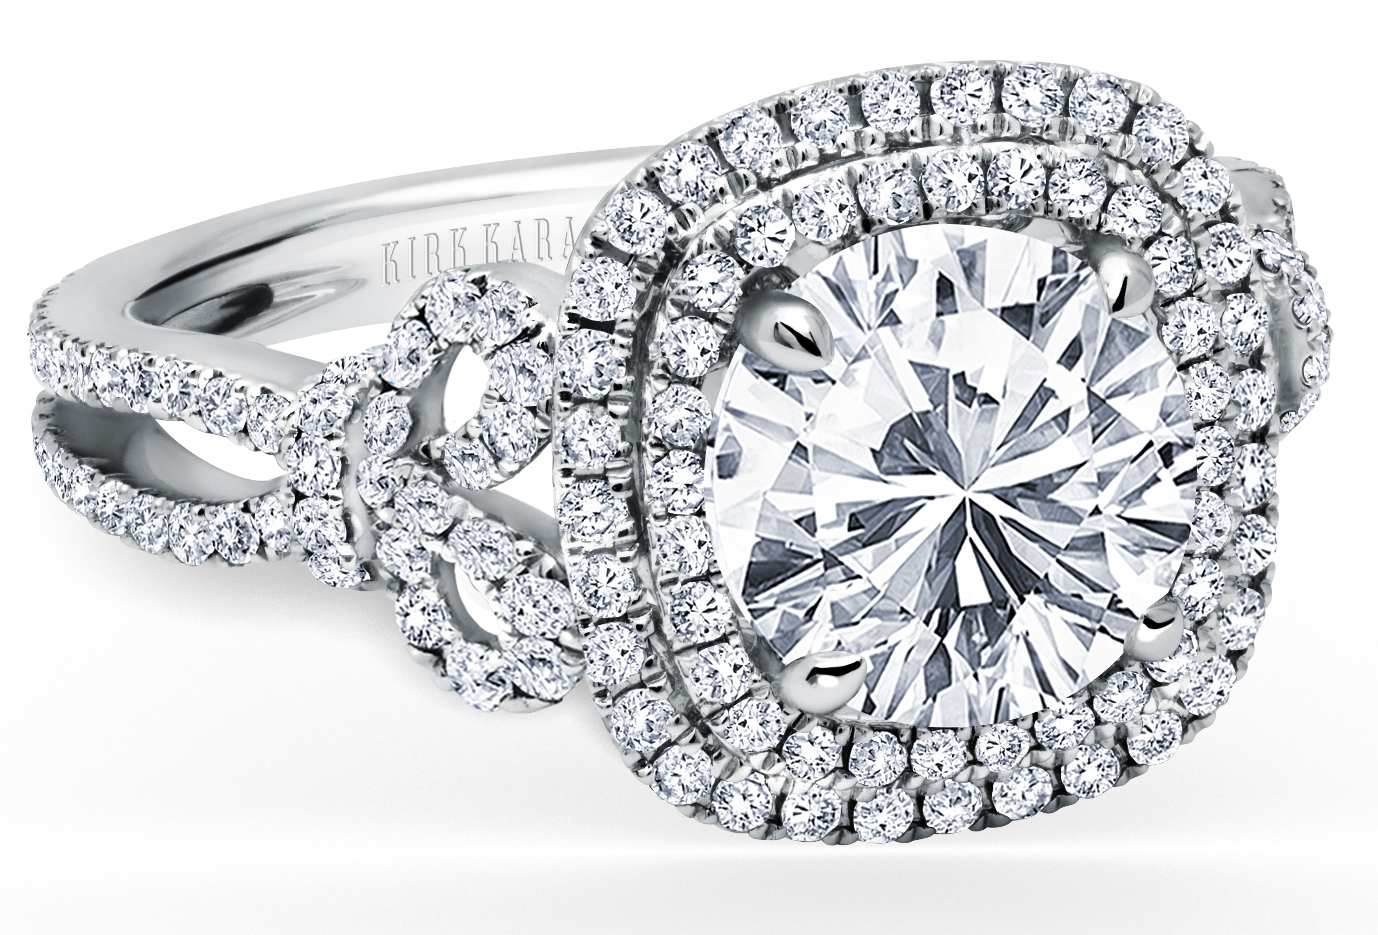 Kirk Kara Pirouetta engagement ring | JCK Supplier News